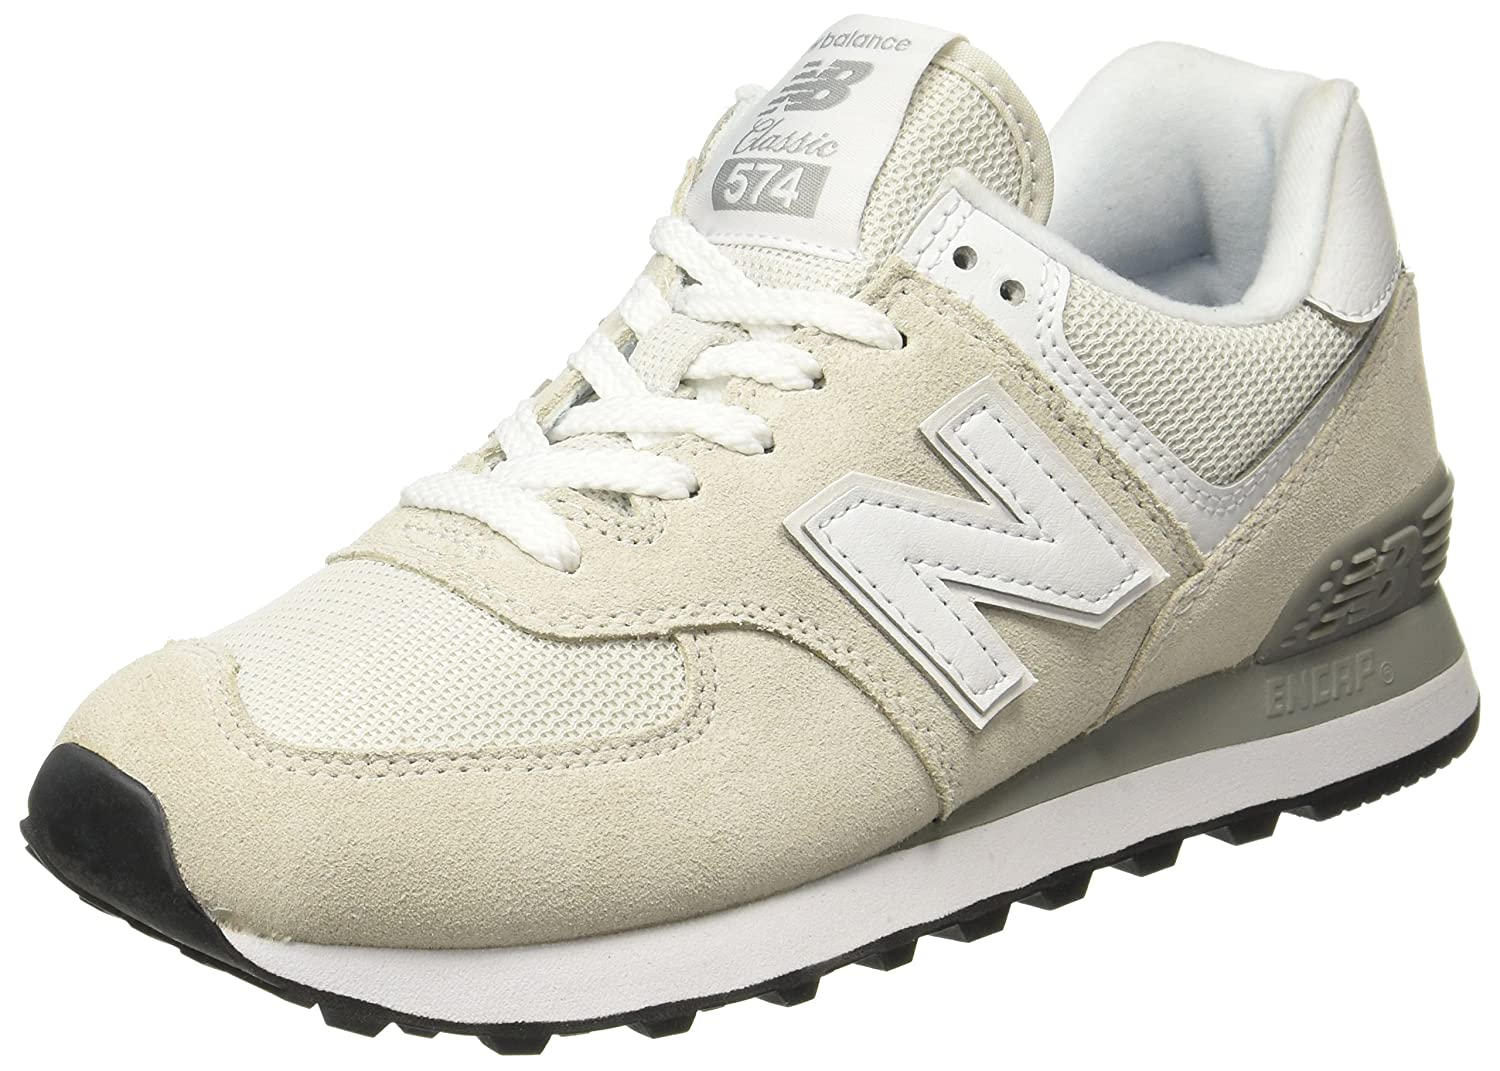 New Balance Wl574, 19534 Bottes Classiques Blanc Femme Blanc (Beige Balance/White) b2200fd - reprogrammed.space